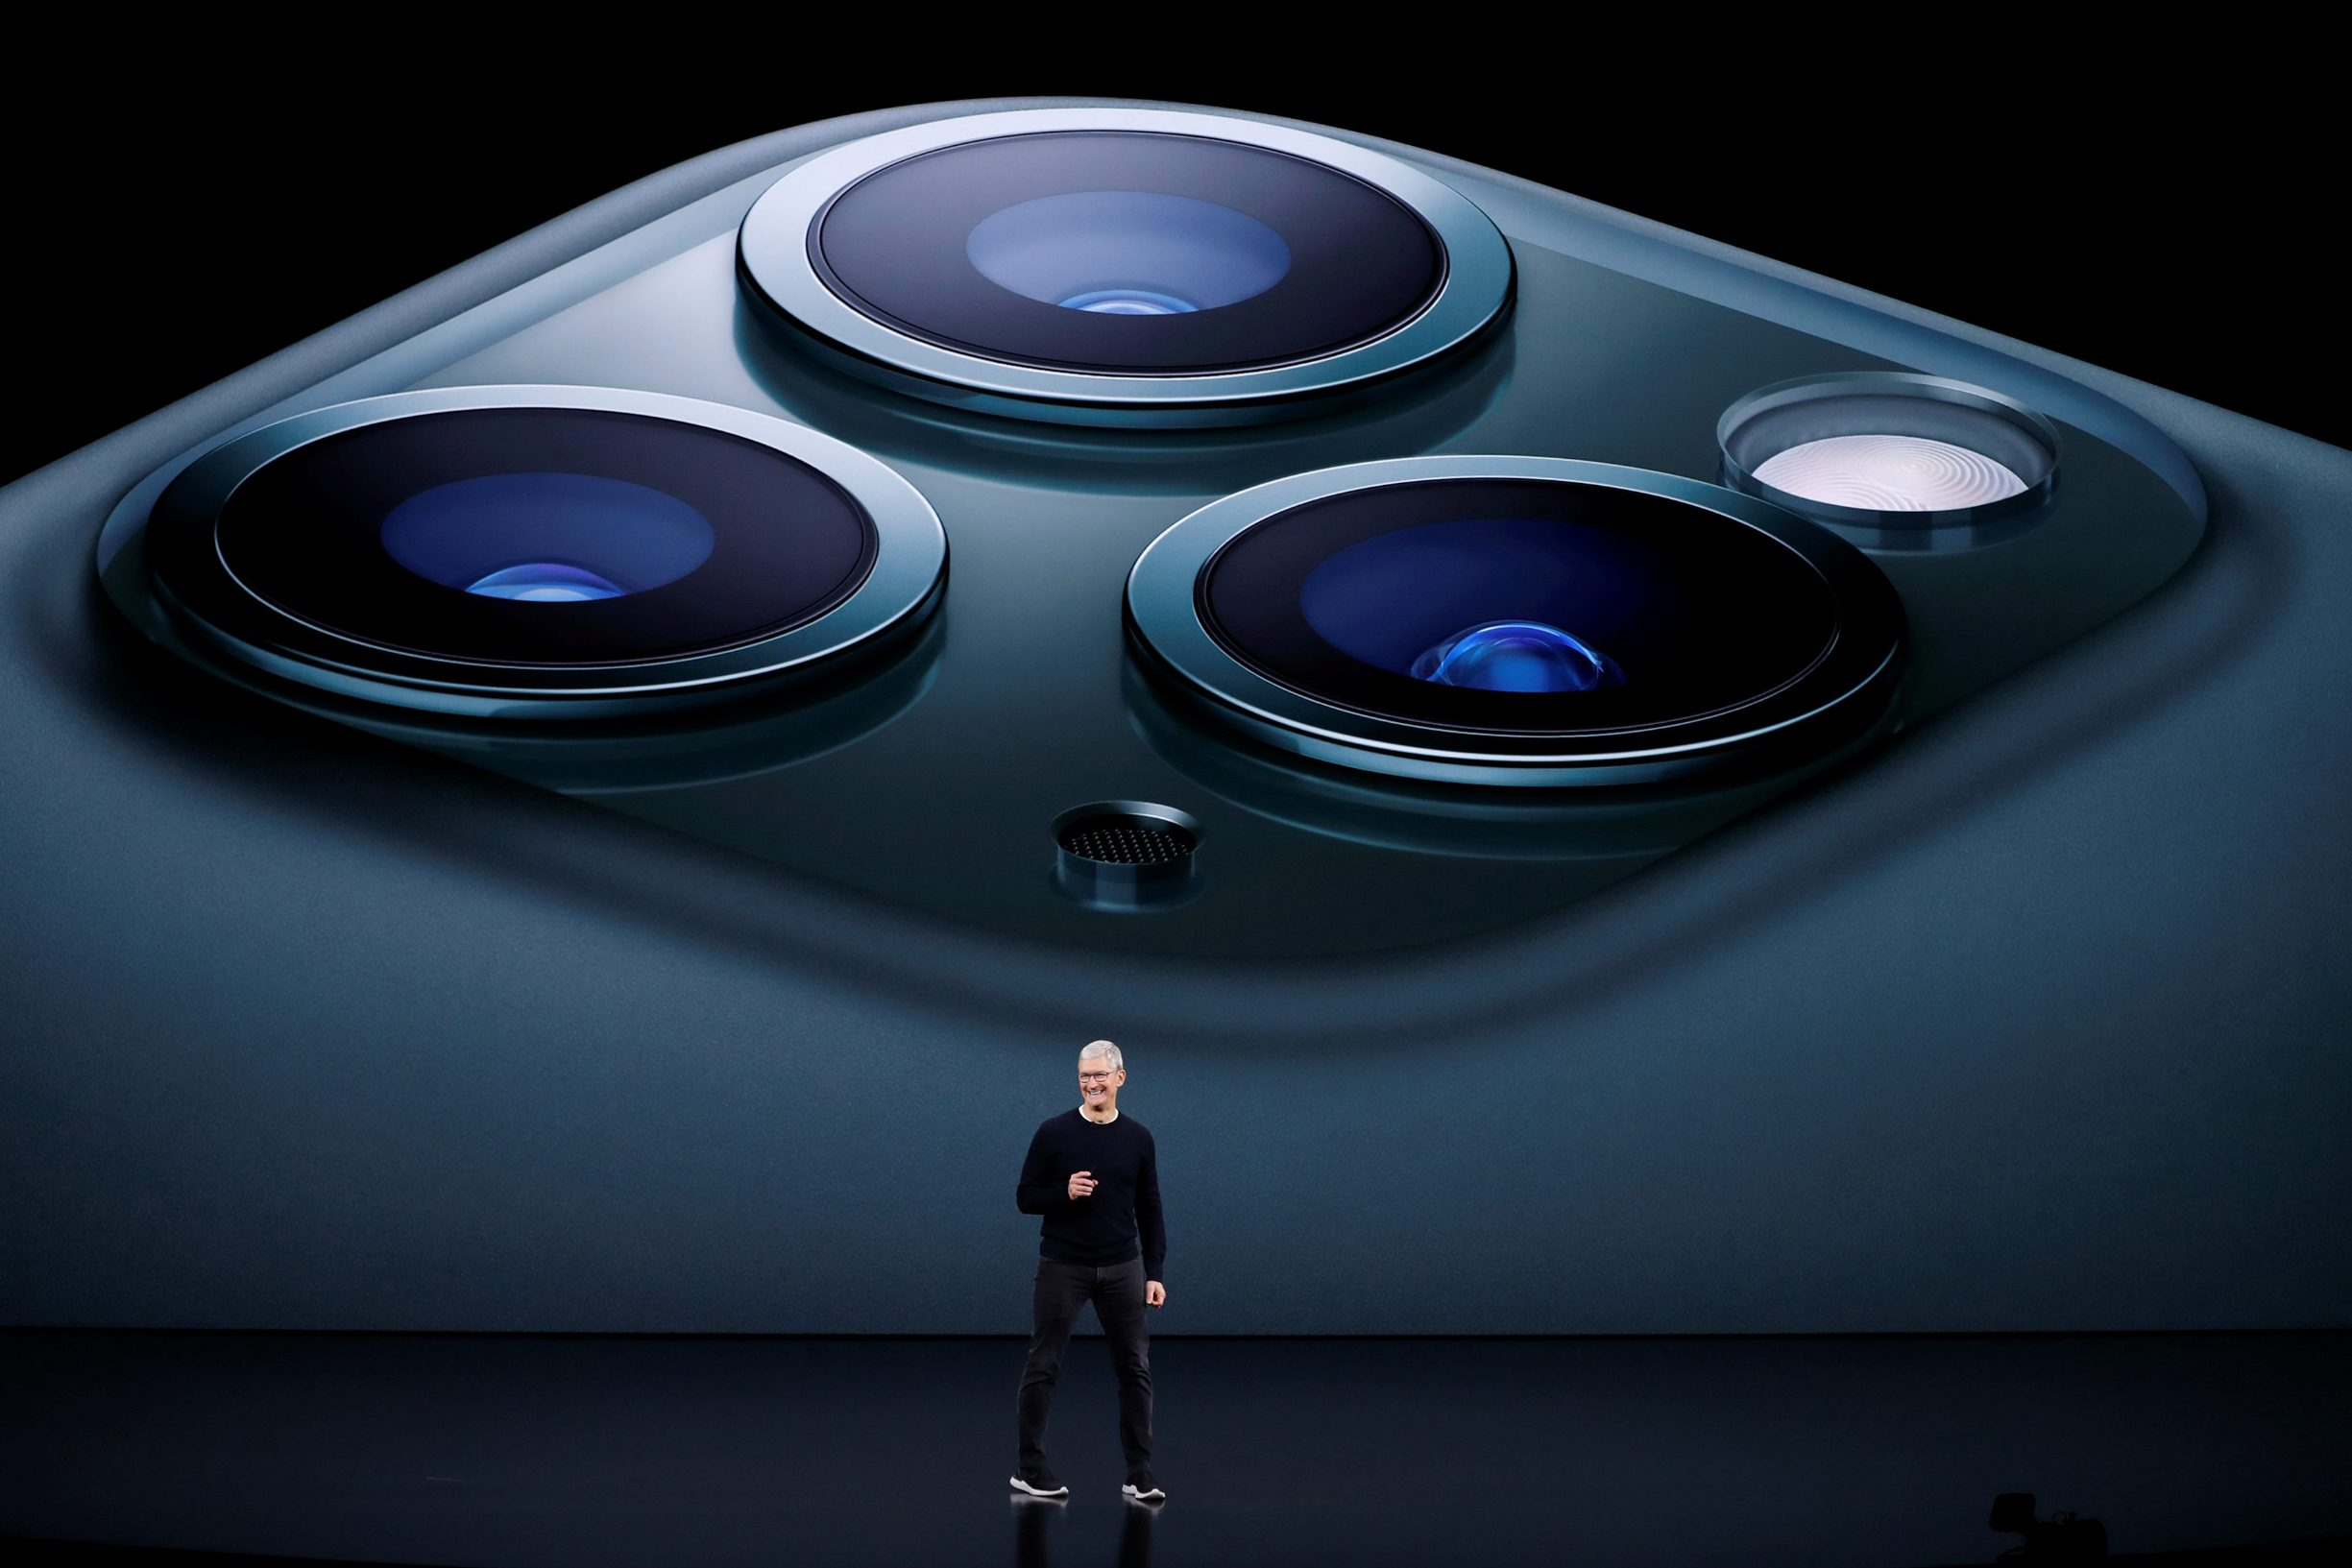 CEO Tim Cook presents the new iPhone 11 Pro at an Apple event at their headquarters in Cupertino, California, U.S. September 10, 2019. REUTERS/Stephen Lam     TPX IMAGES OF THE DAY